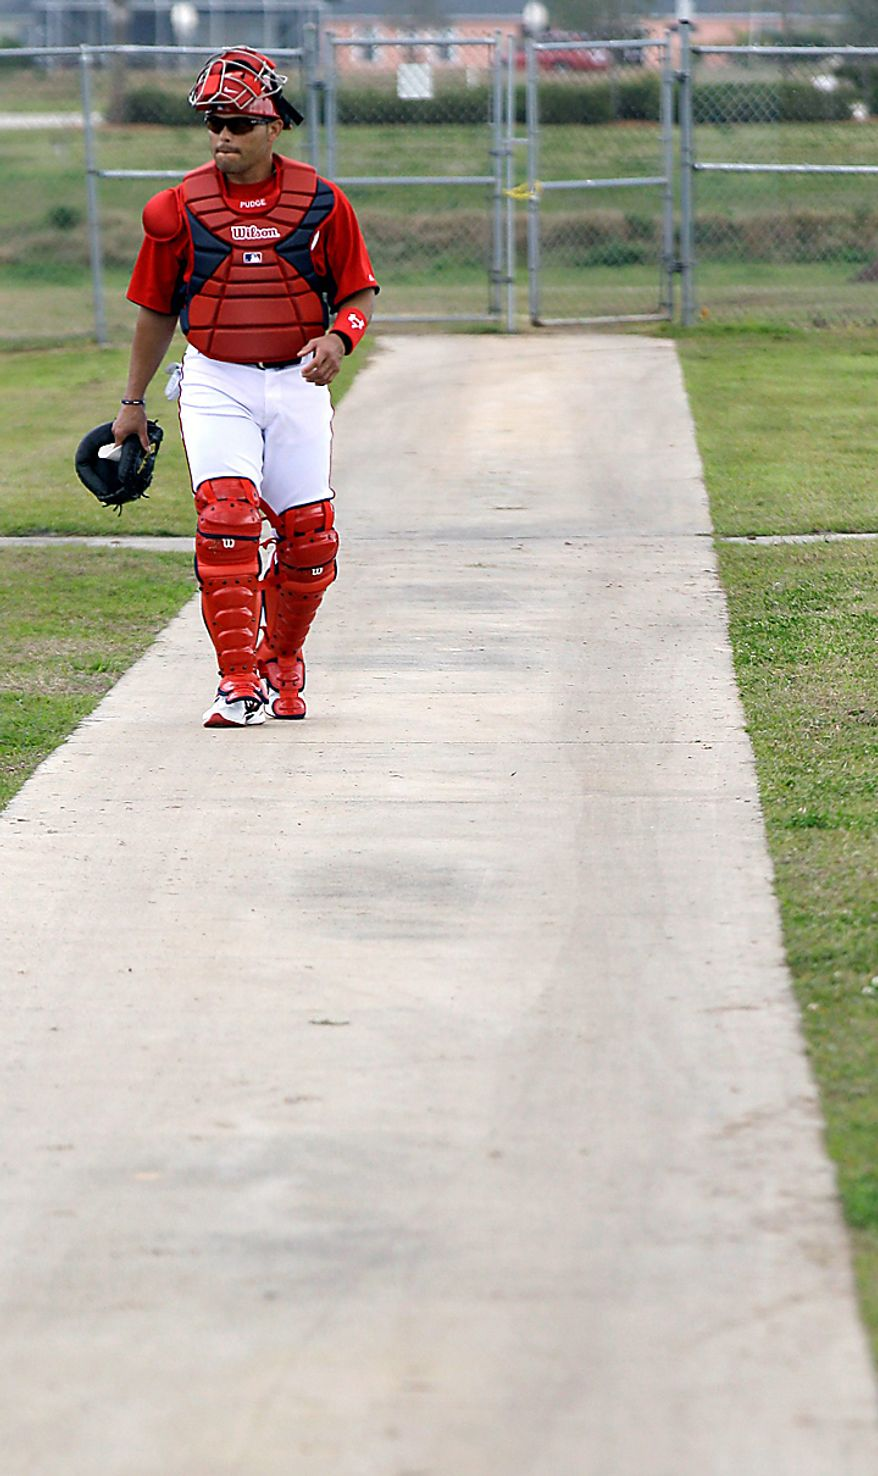 Washington Nationals catcher Ivan Rodriguez makes his way to a practice field during spring training baseball, Thursday, Feb. 17, 2011, in Viera, Fla. (AP Photo/David J. Phillip)